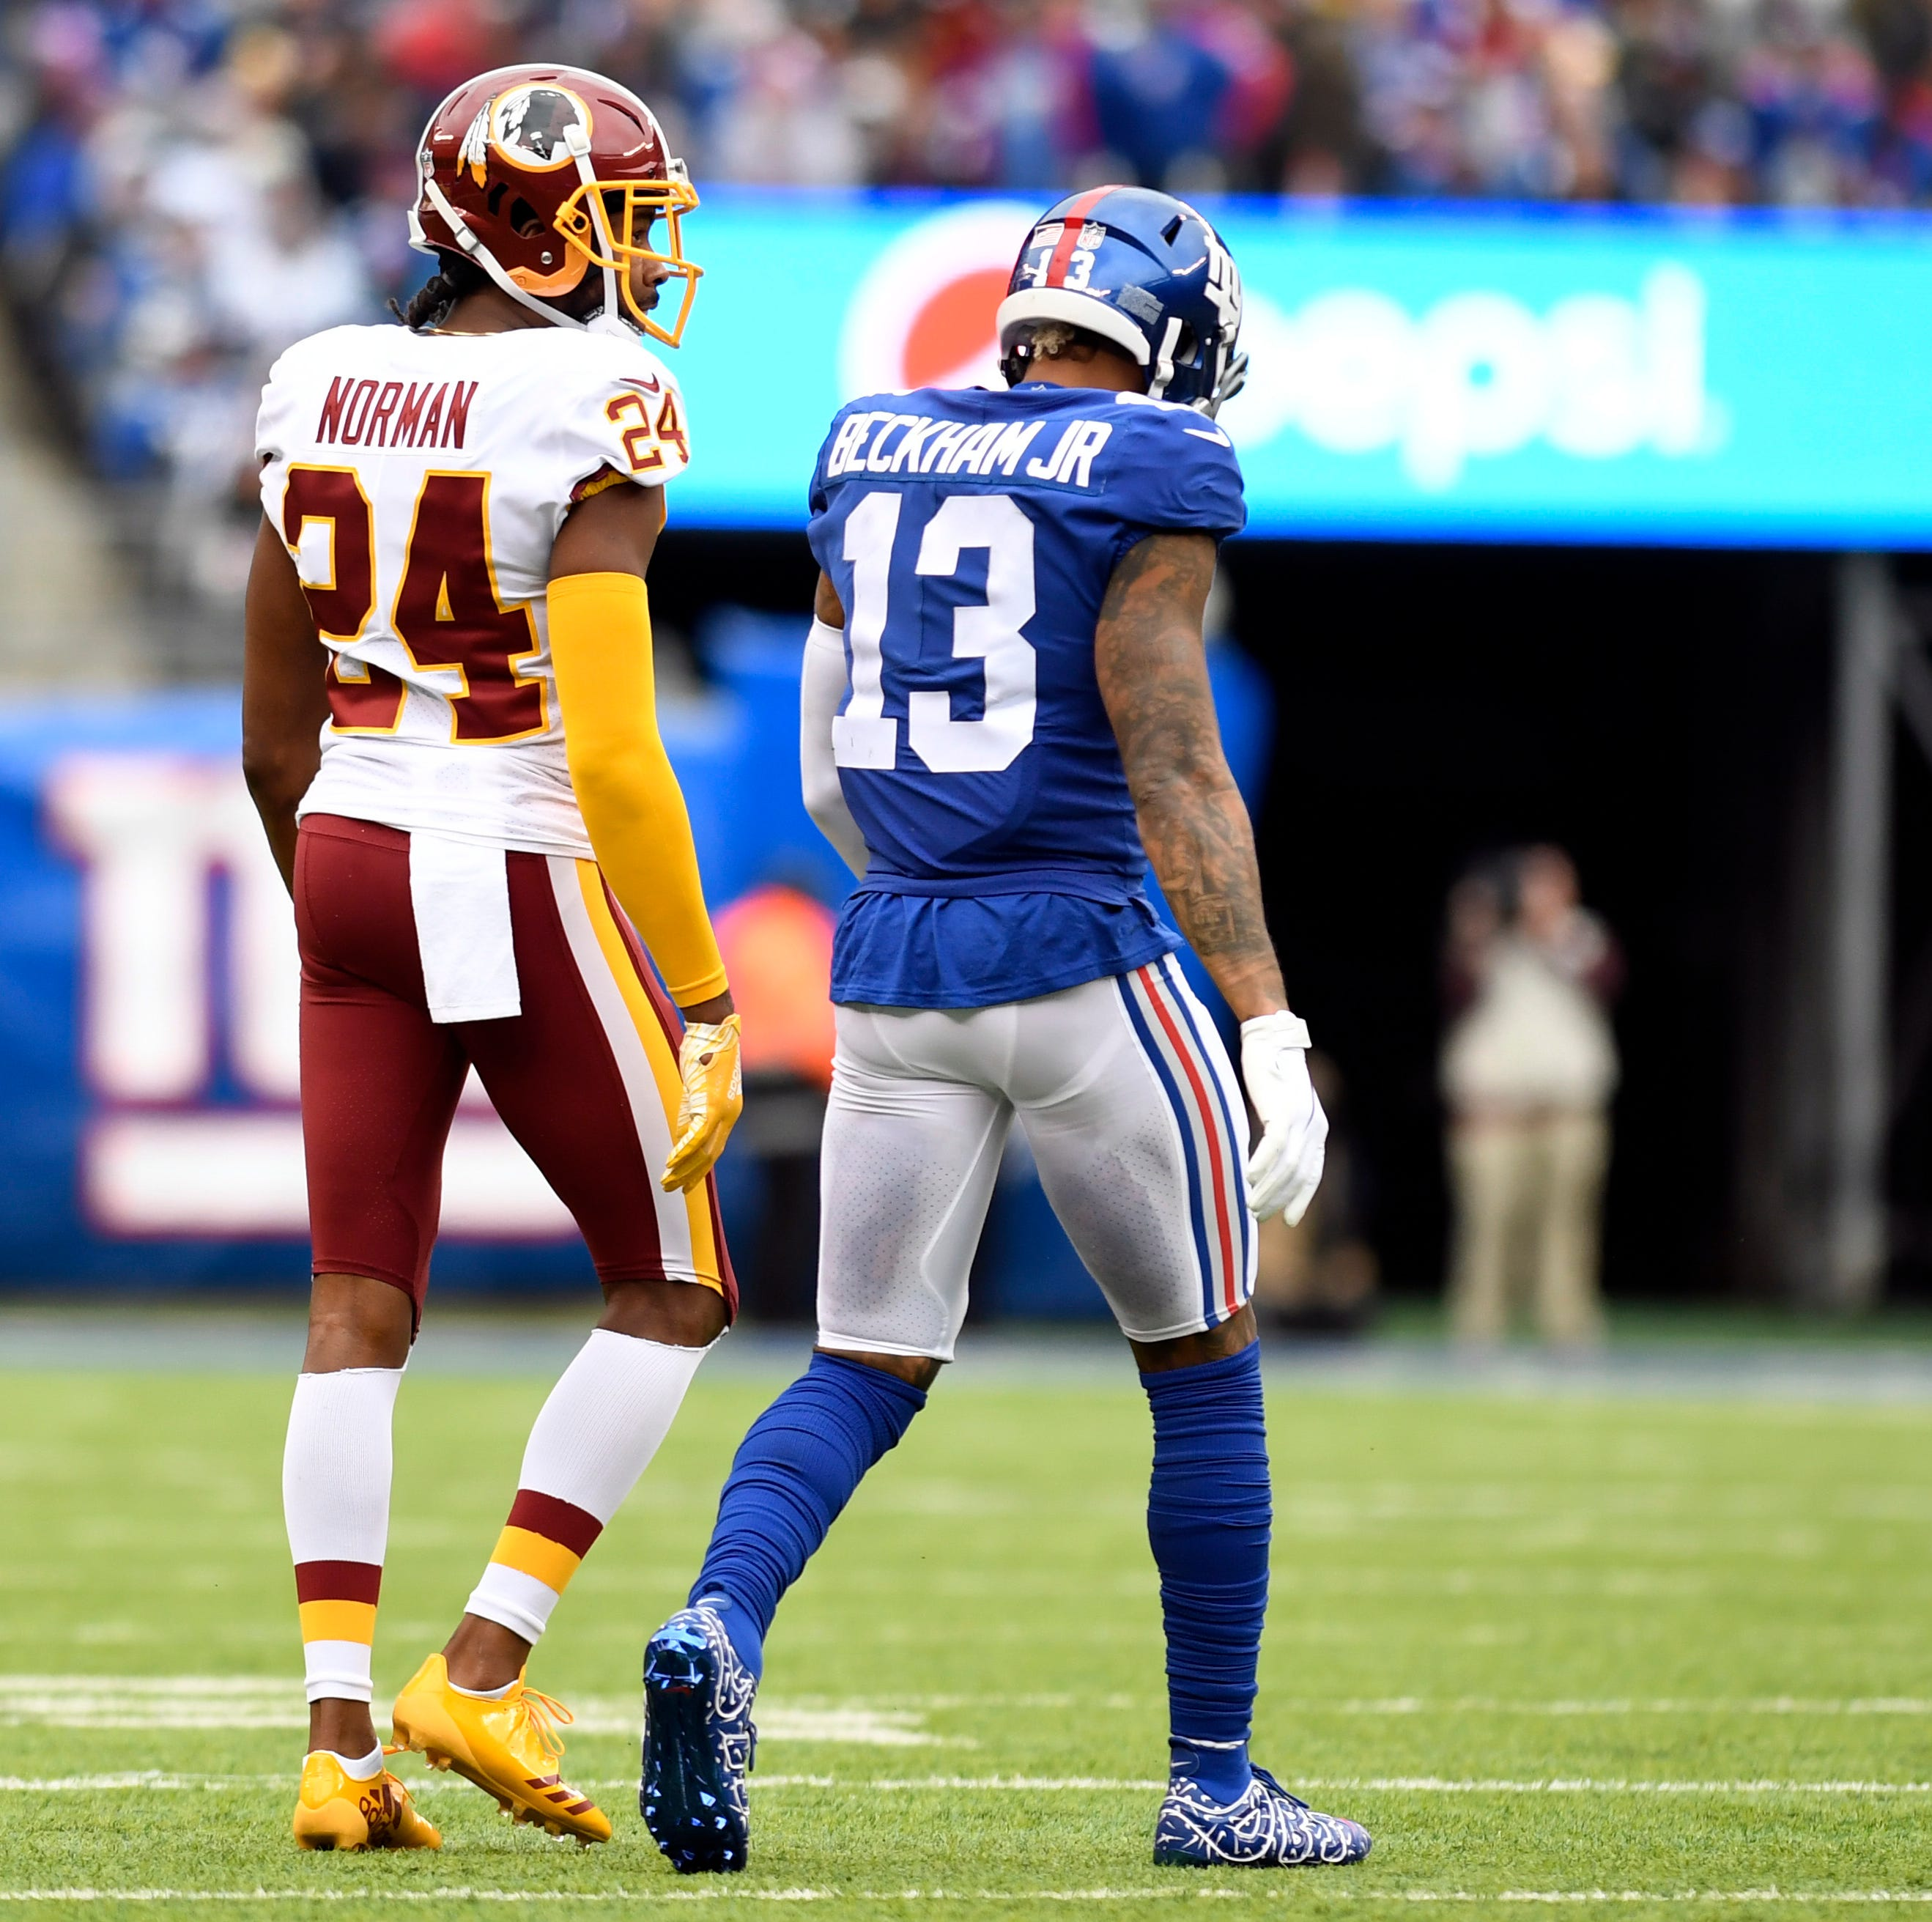 Giant surprise: Odell Beckham Jr. downgraded to out, will not play Sunday vs. Redskins